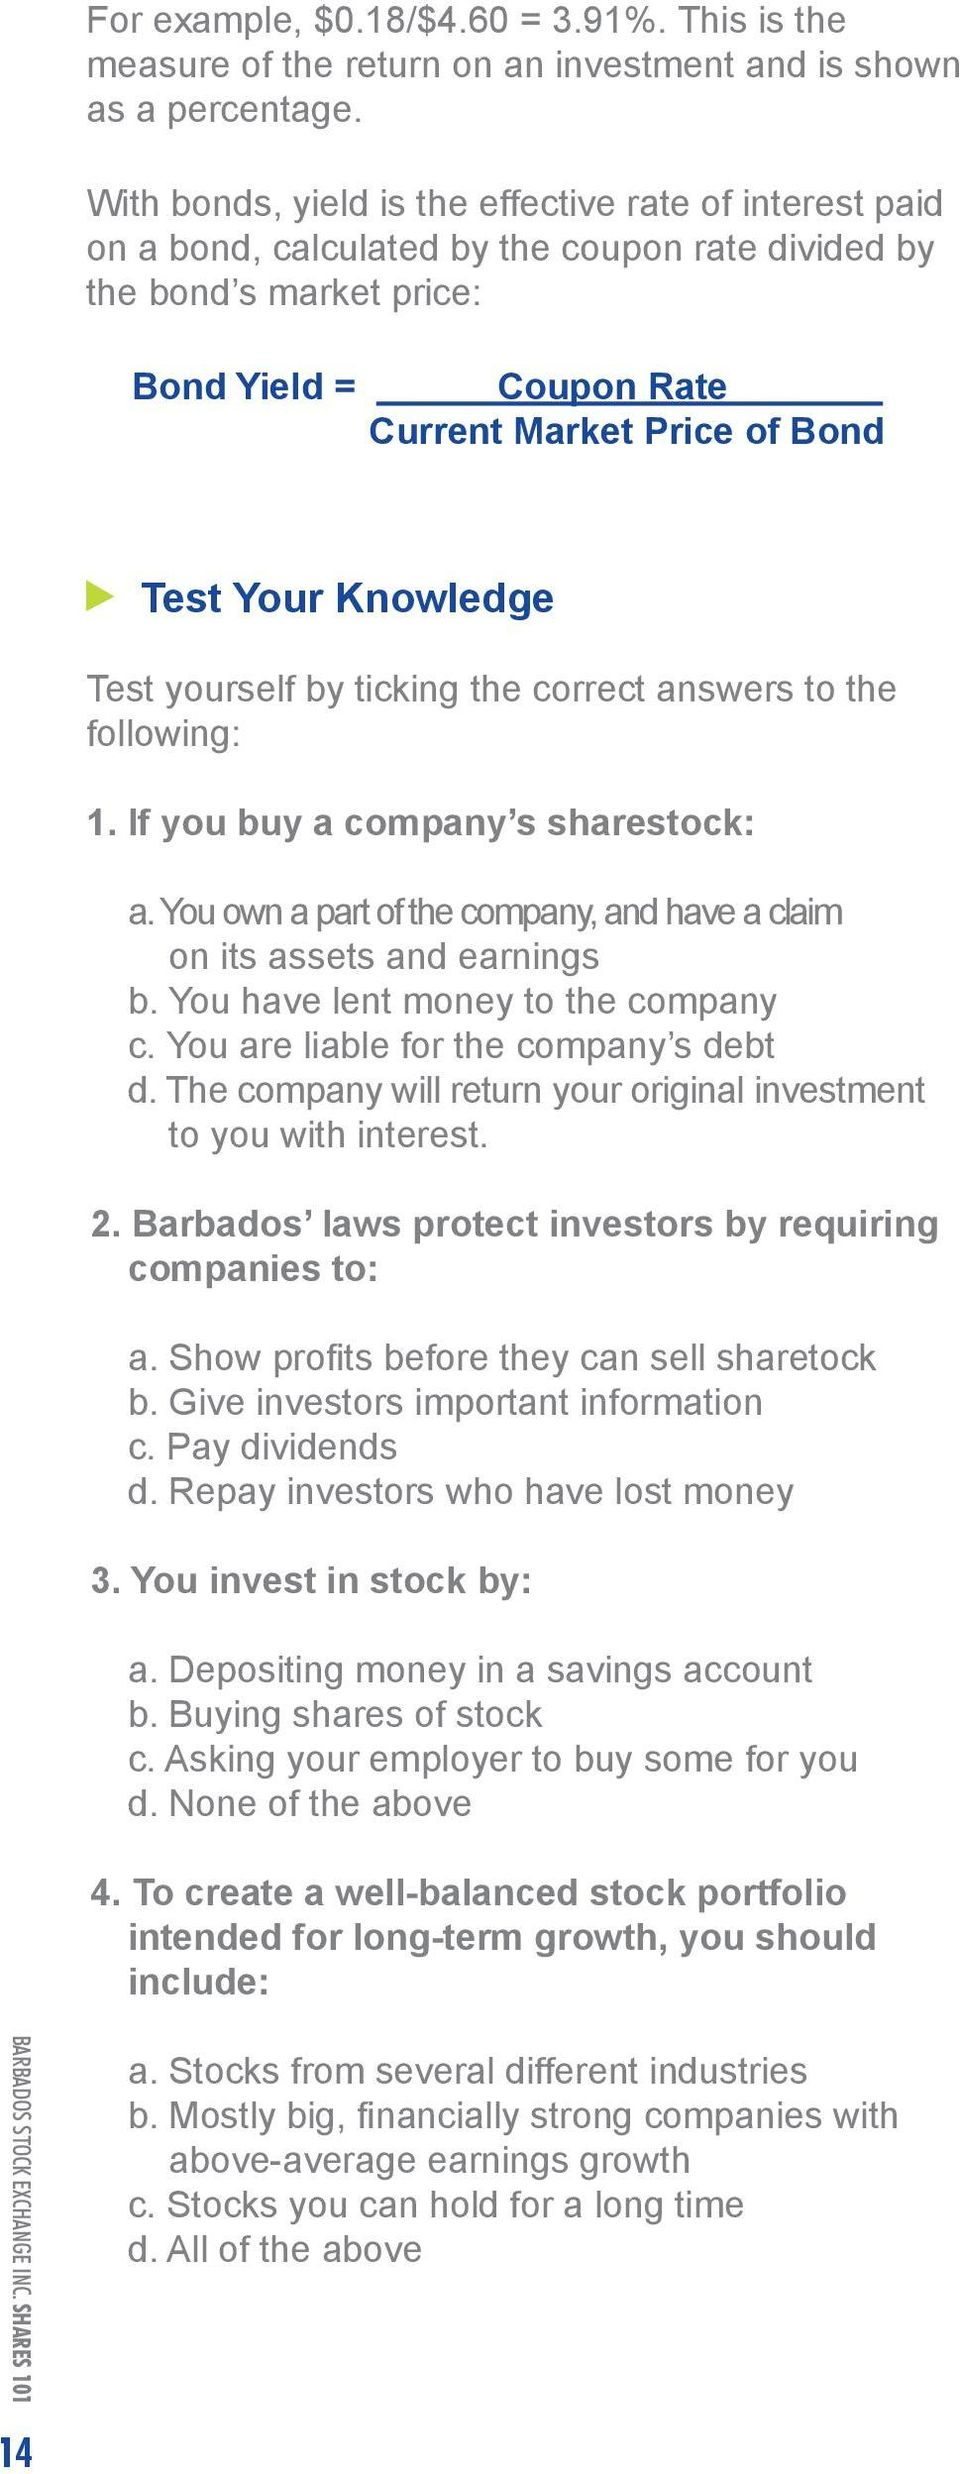 Knowledge Test yourself by ticking the correct answers to the following: 1. If you buy a company s sharestock: a. You own a part of the company, and have a claim on its assets and earnings b.